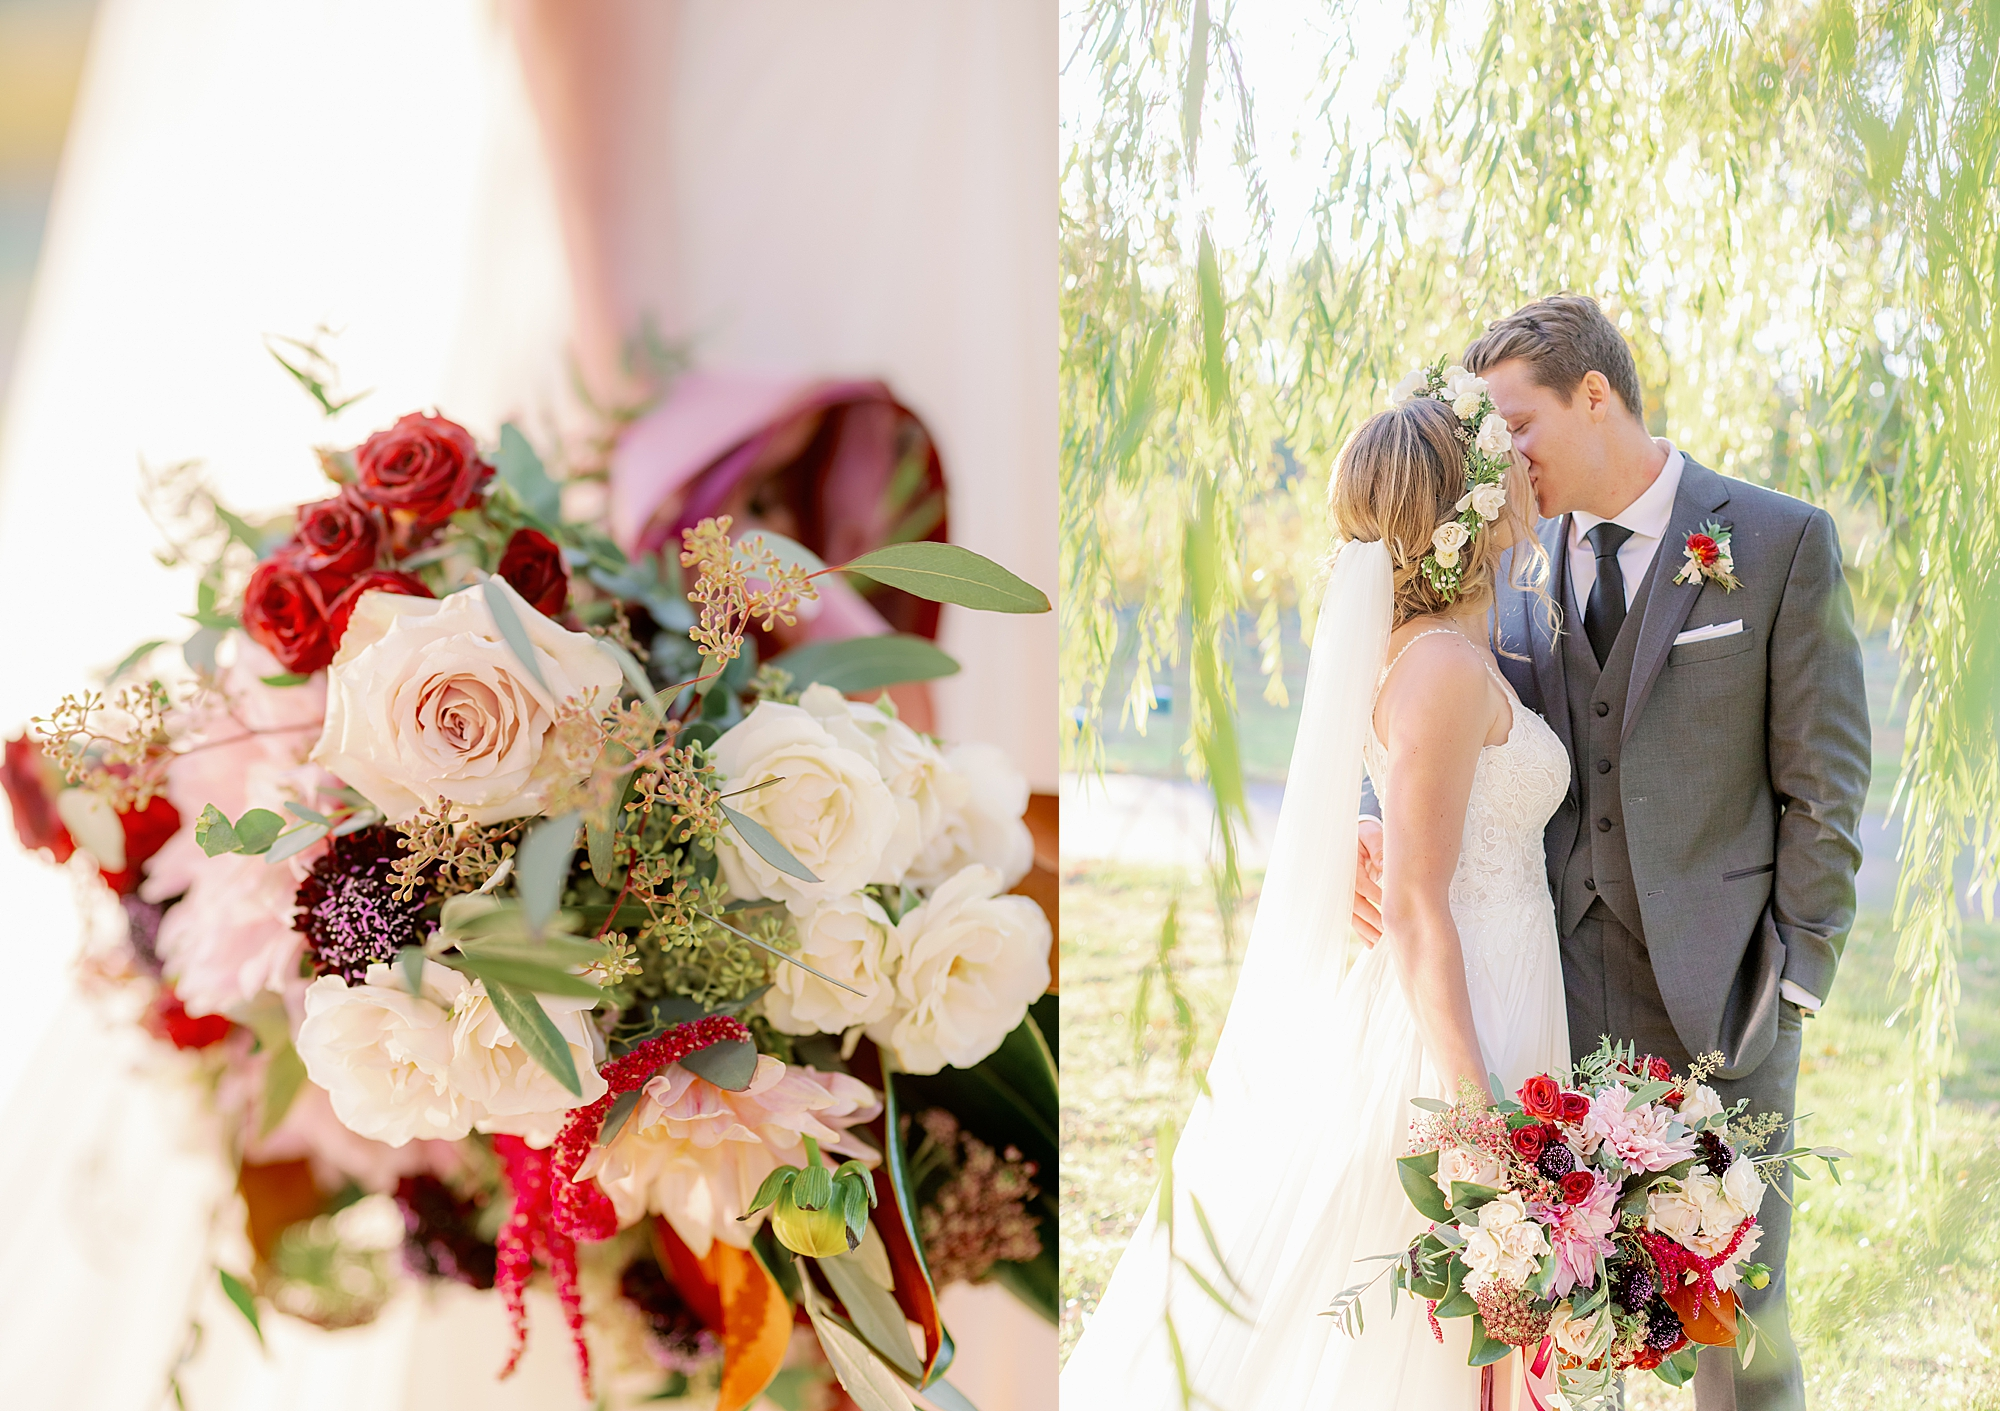 Cape May Wedding Photography by Magdalena Studios 0027